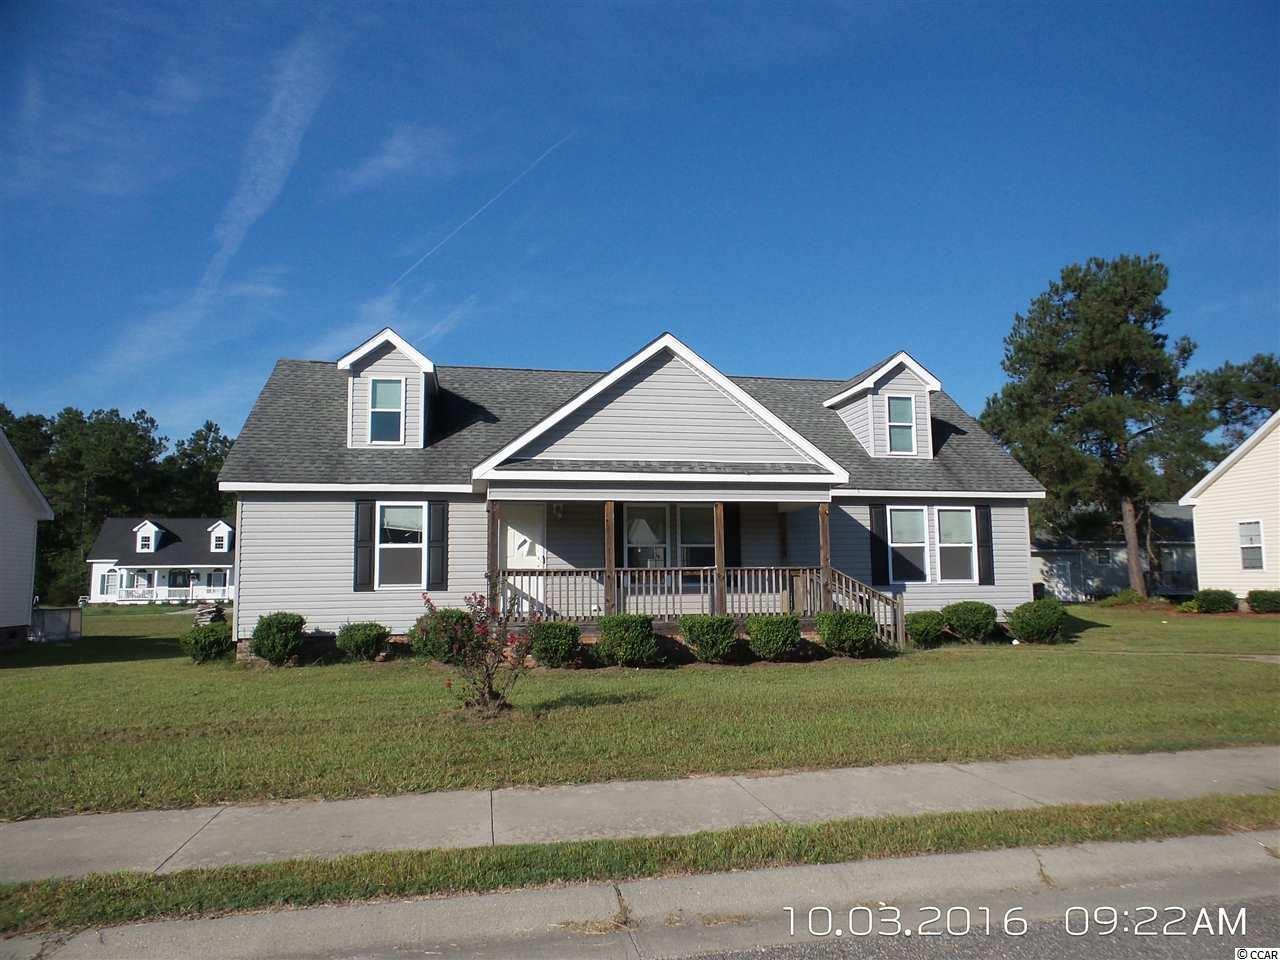 1020 Morningdale St, Conway, SC 29526